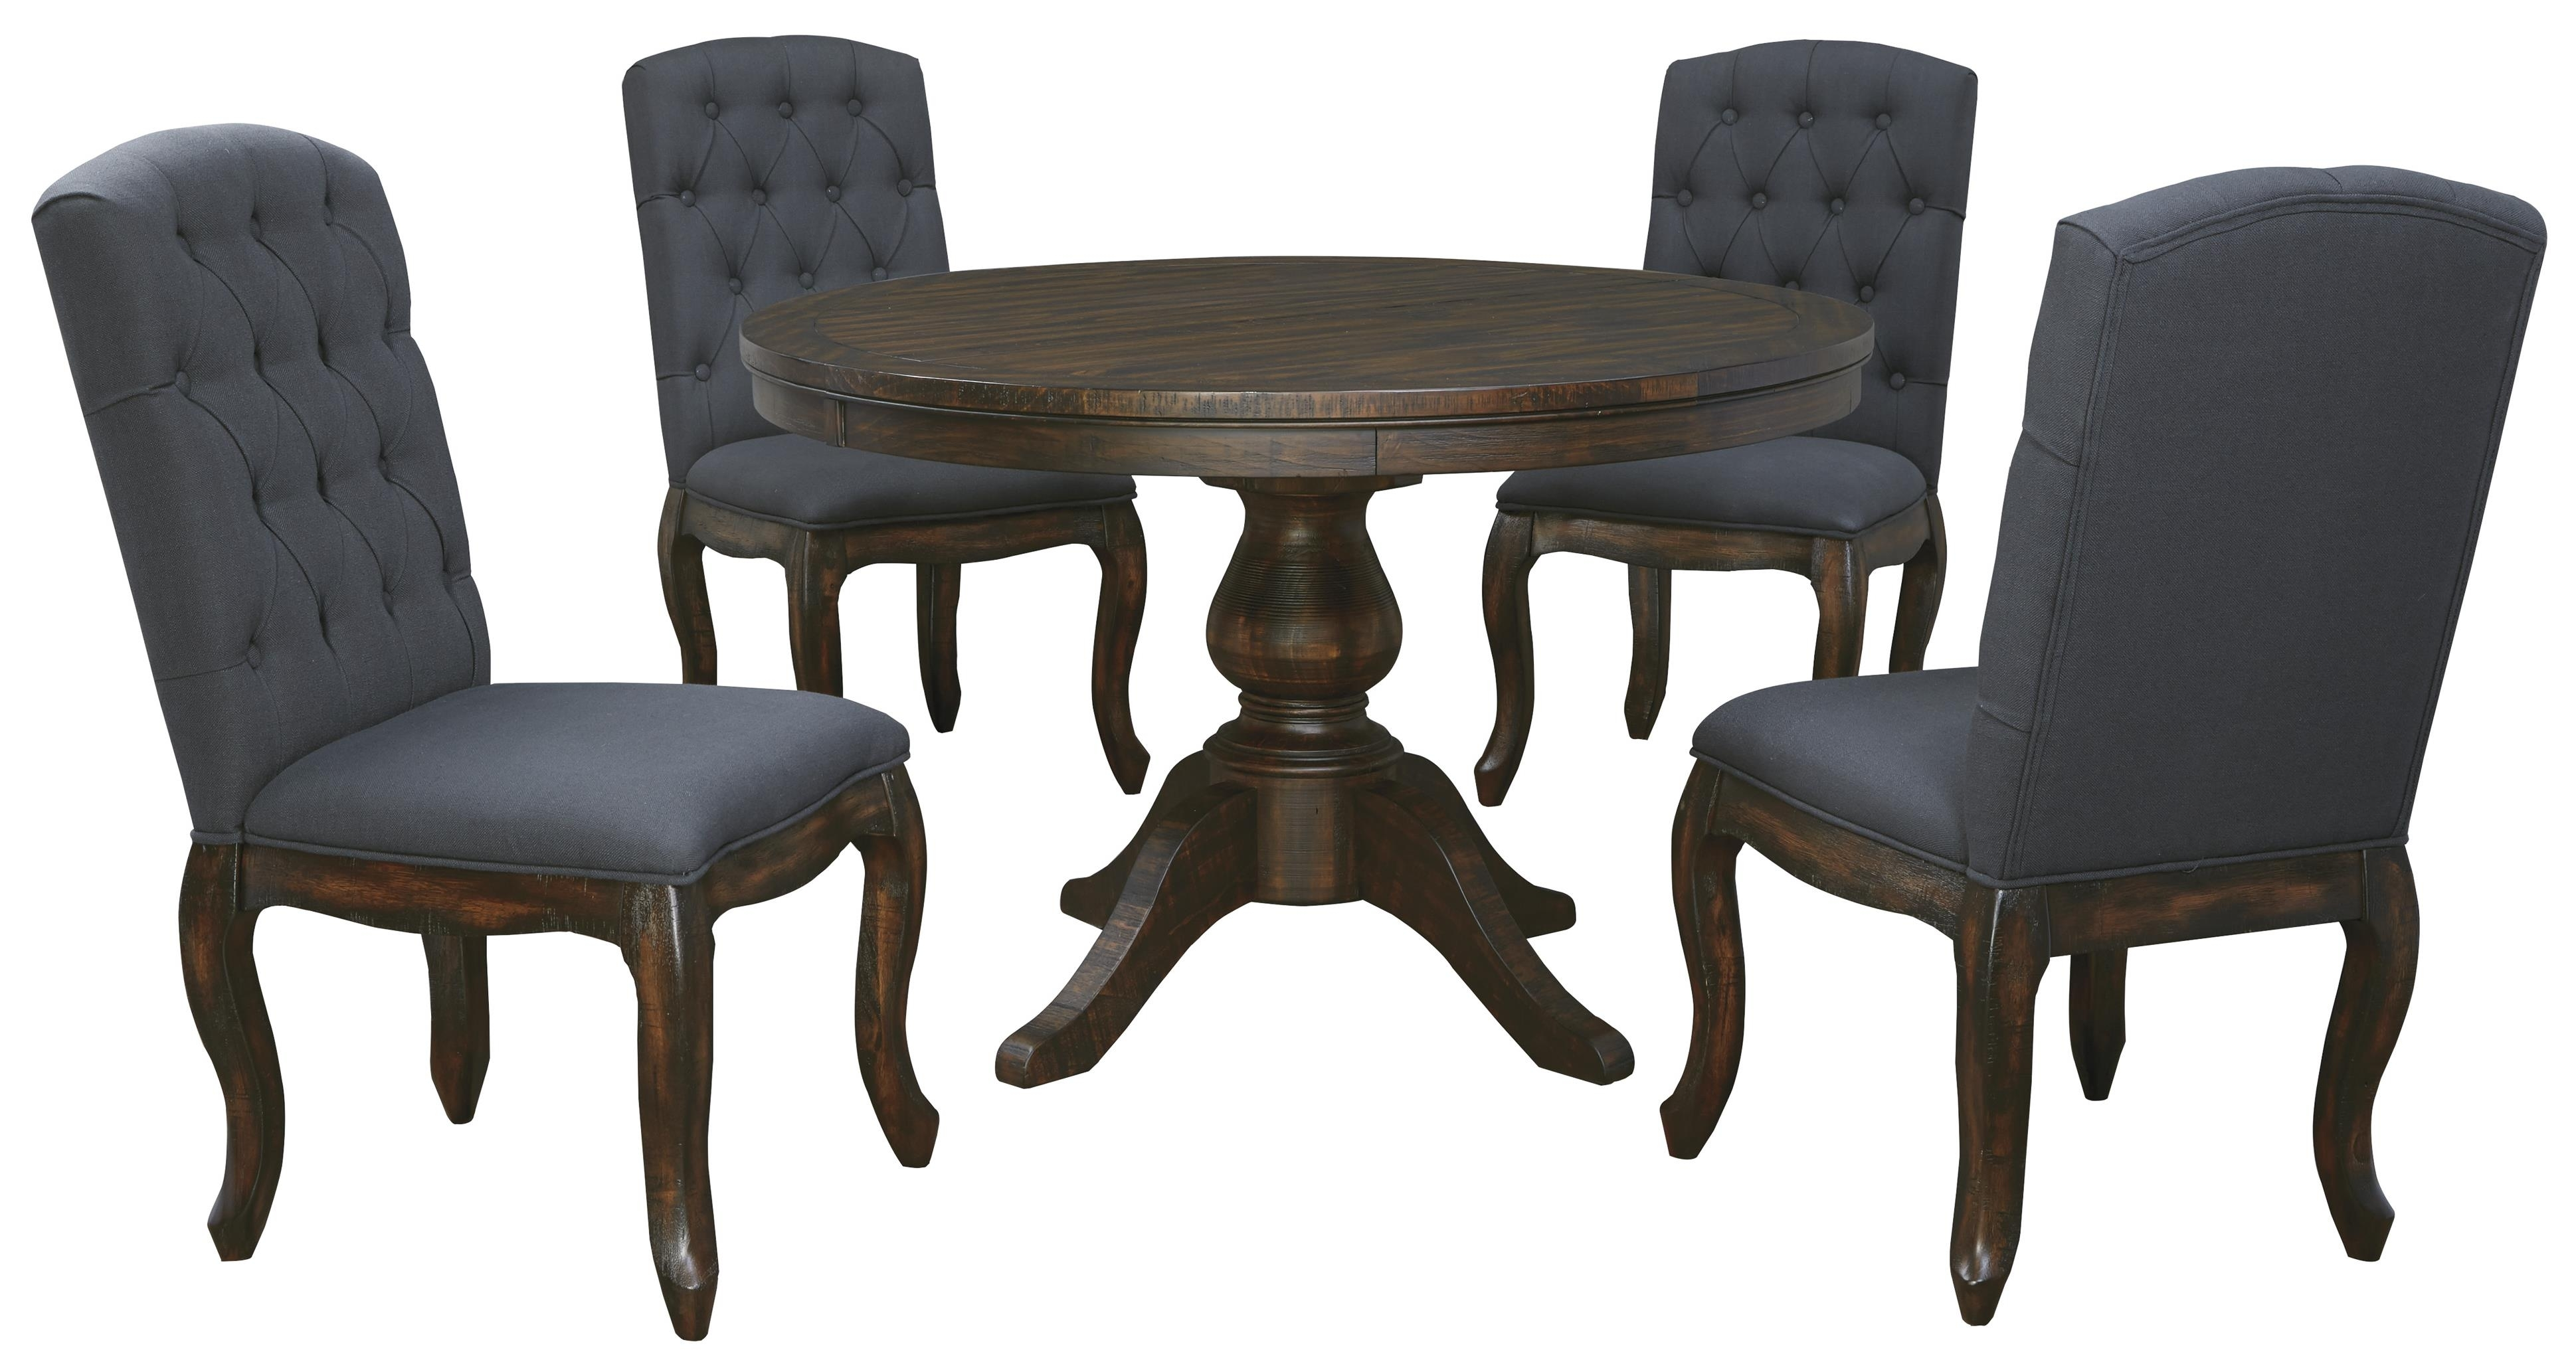 5 Piece Round Dining Table Set – Castrophotos Within Most Popular Macie 5 Piece Round Dining Sets (View 5 of 20)